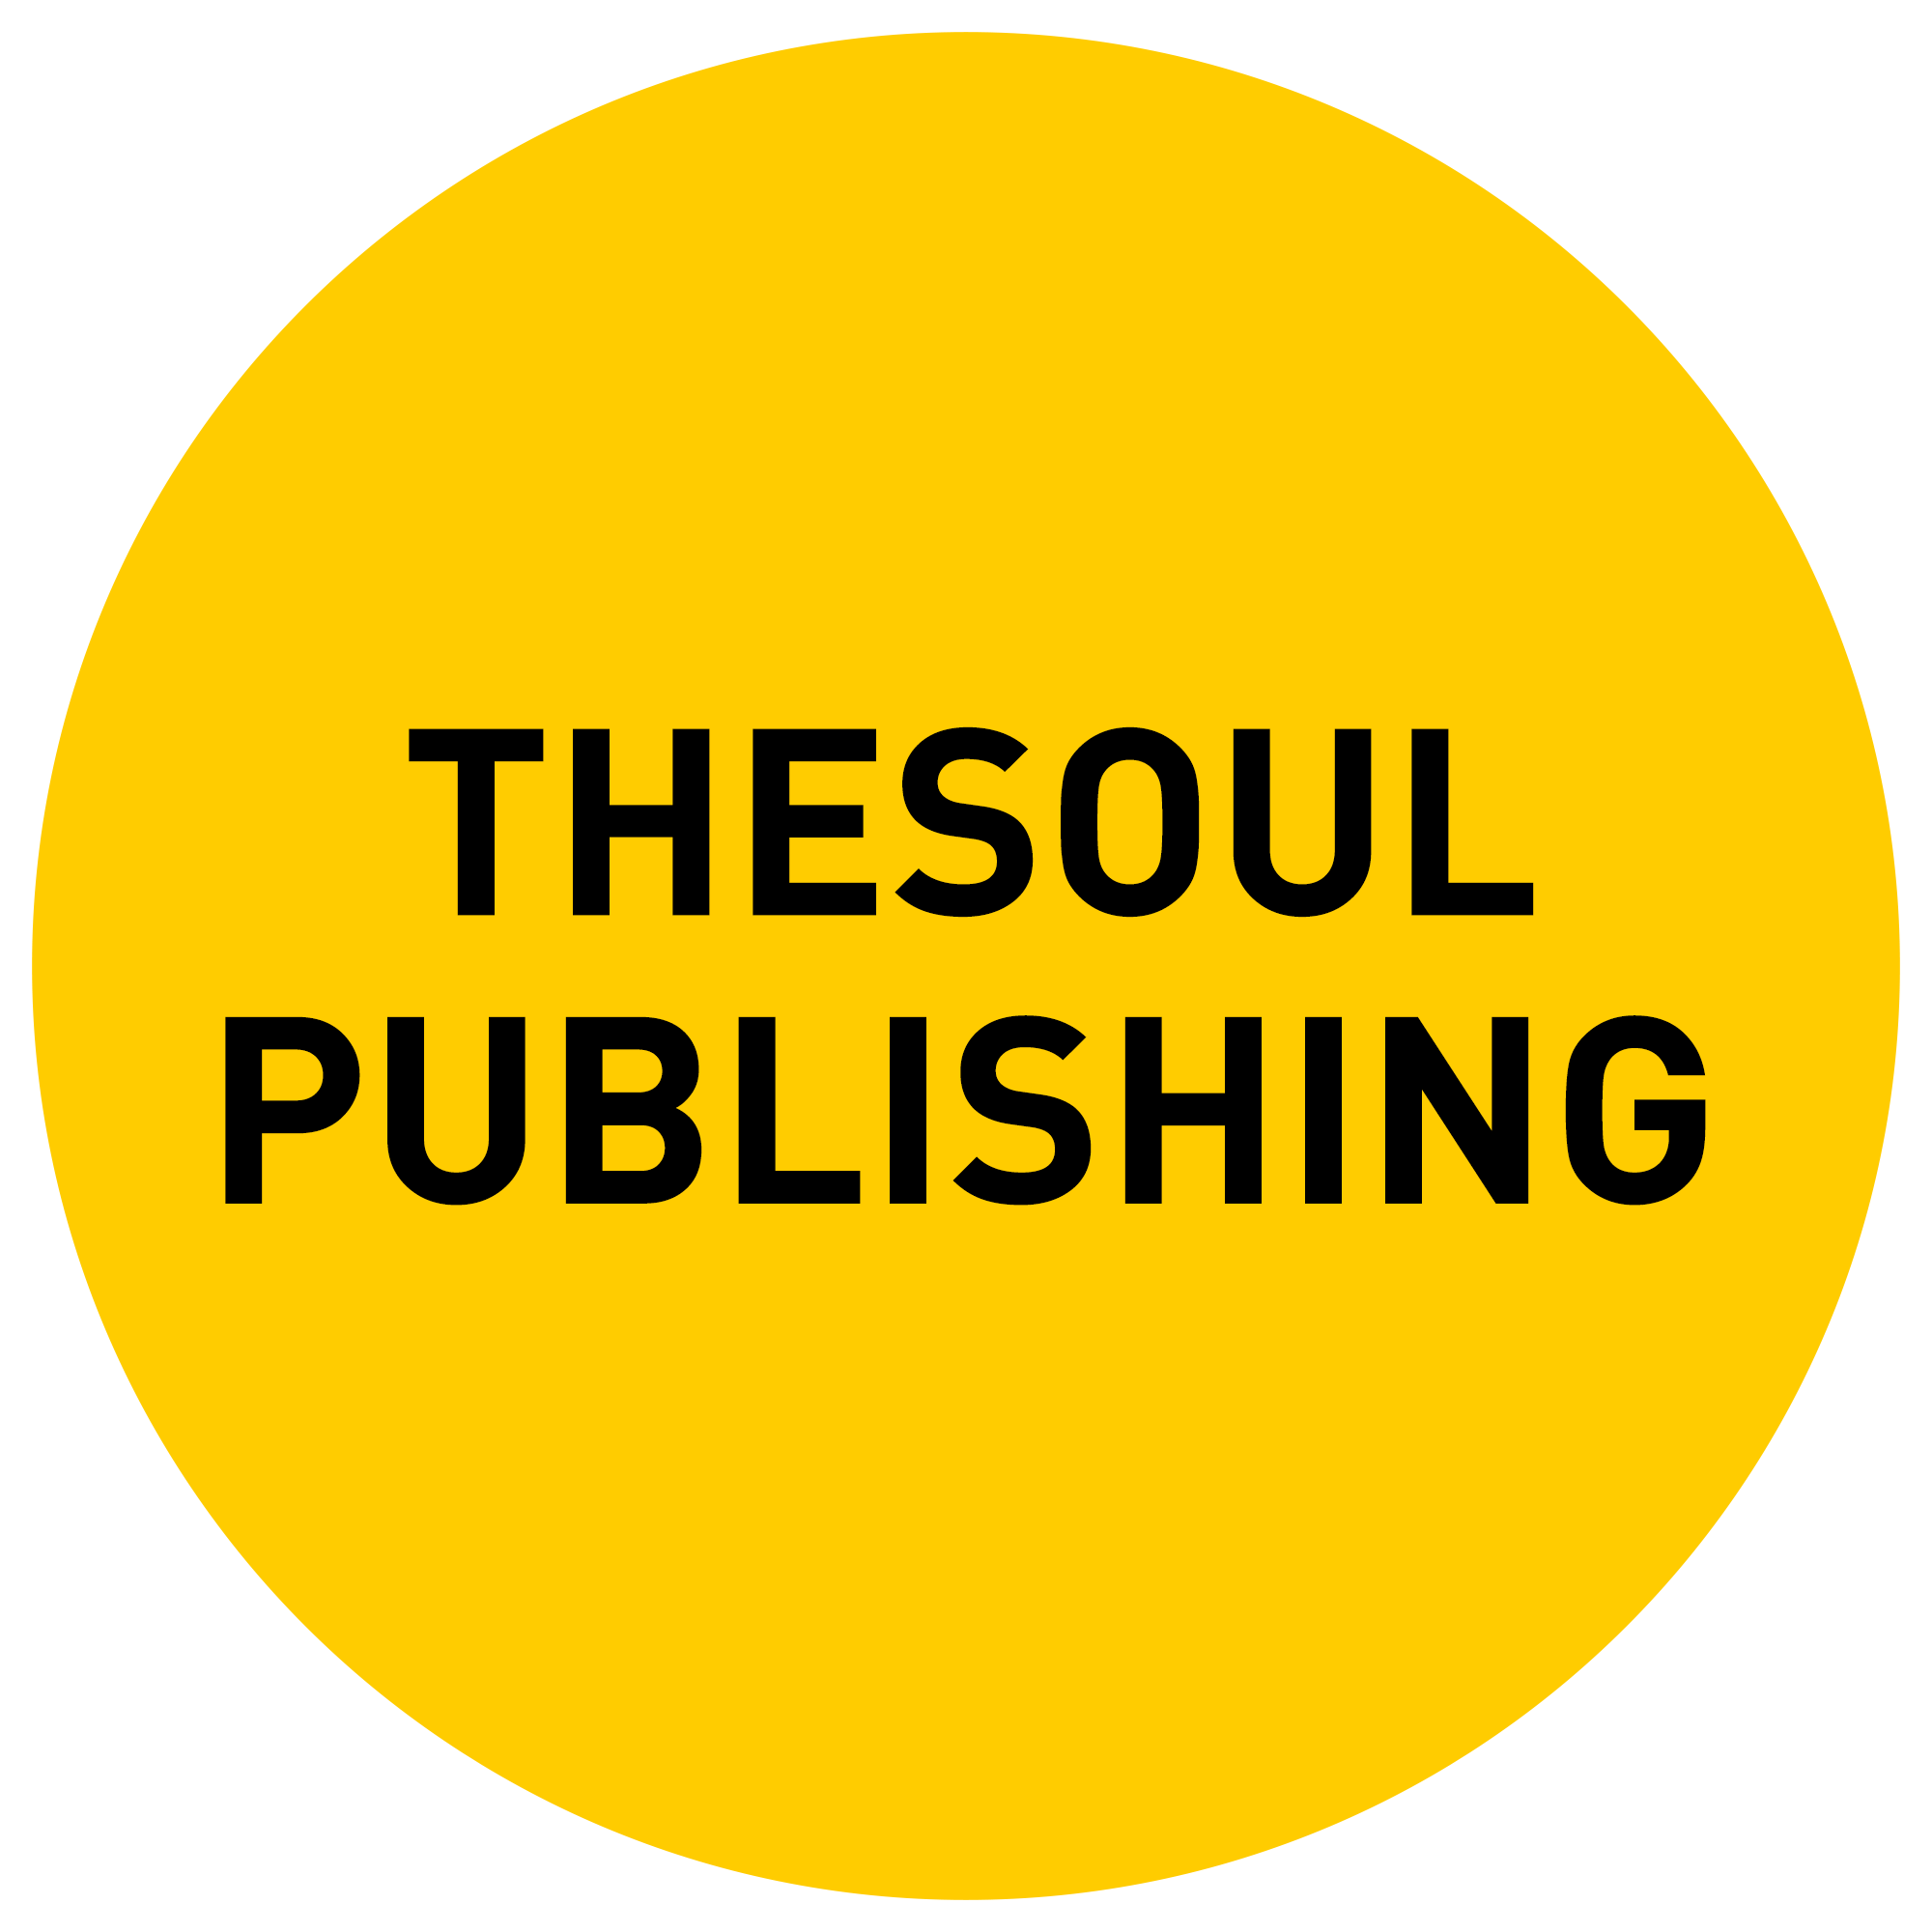 5-Minute Crafts Youtube Channel - TheSoul Publishing's logo